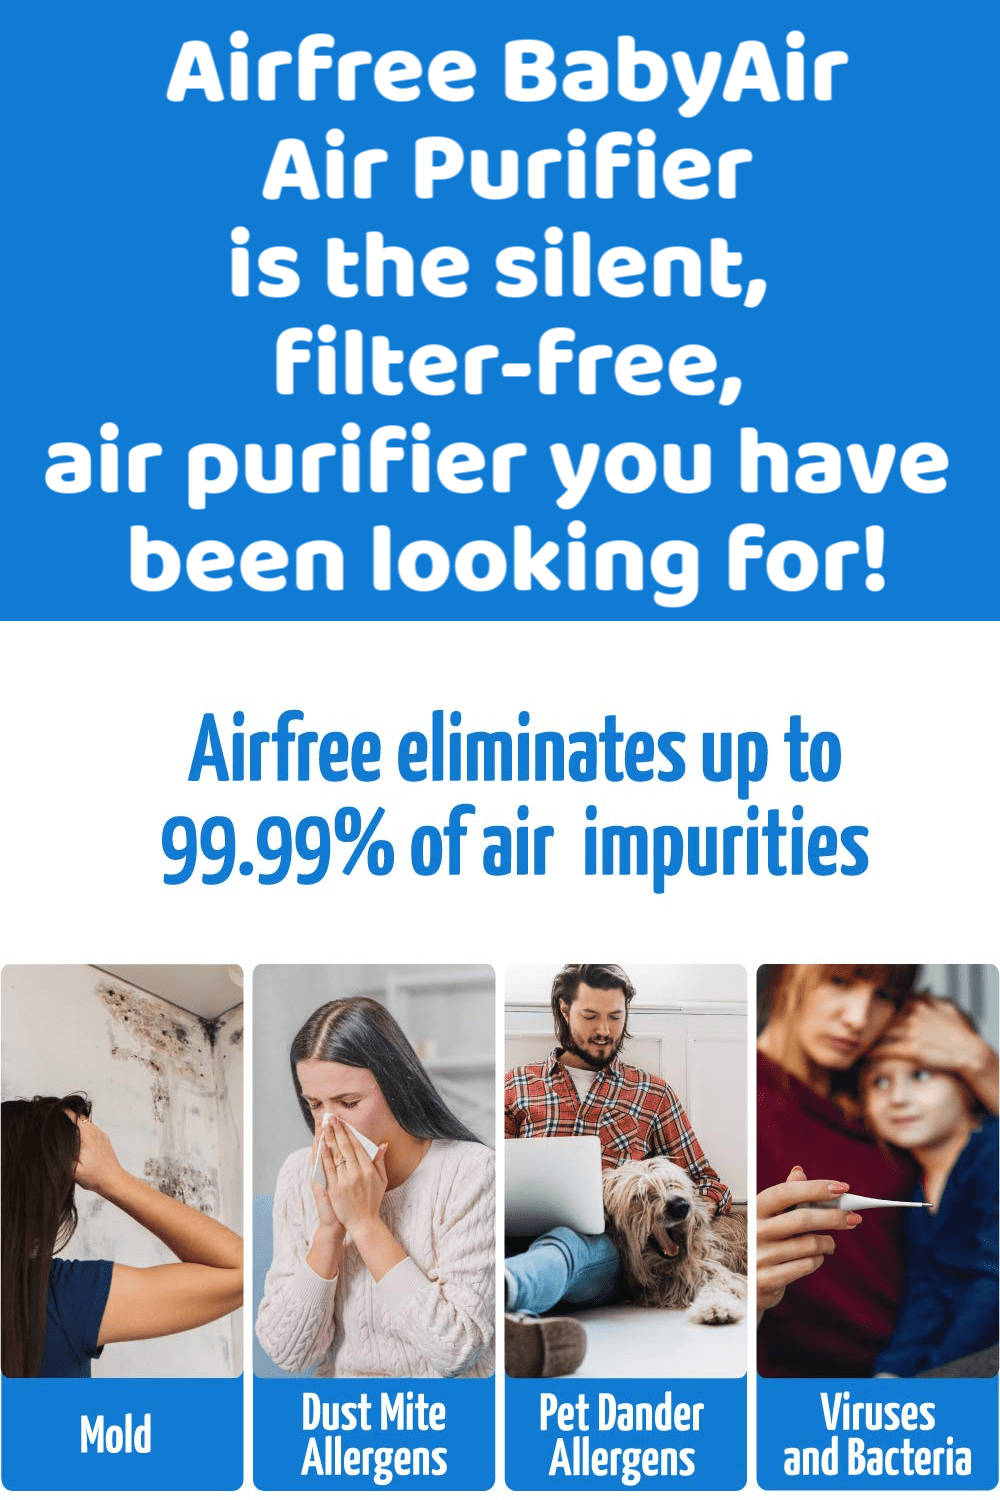 The Airfree BabyAir Air Purifier Silently destroys mold